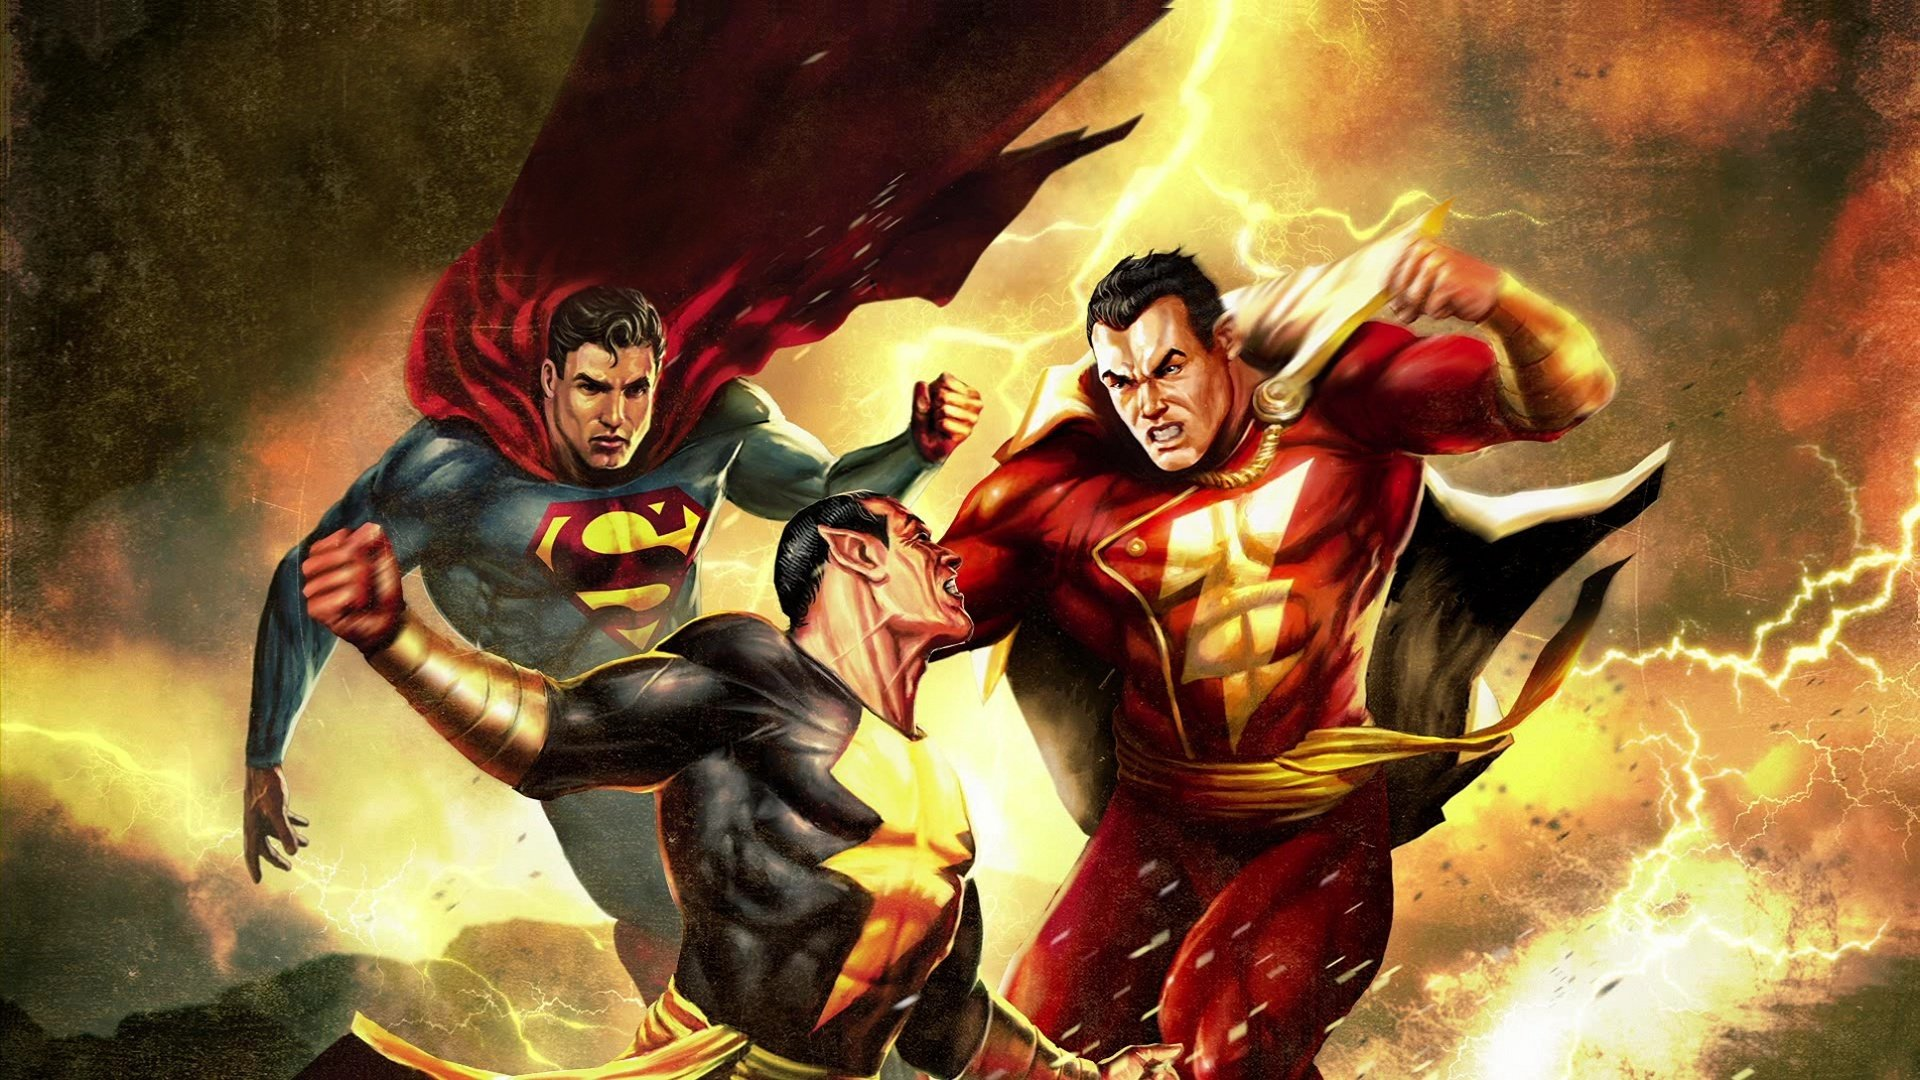 shazam-superman-black-adam.jpg (397.6 Kb)